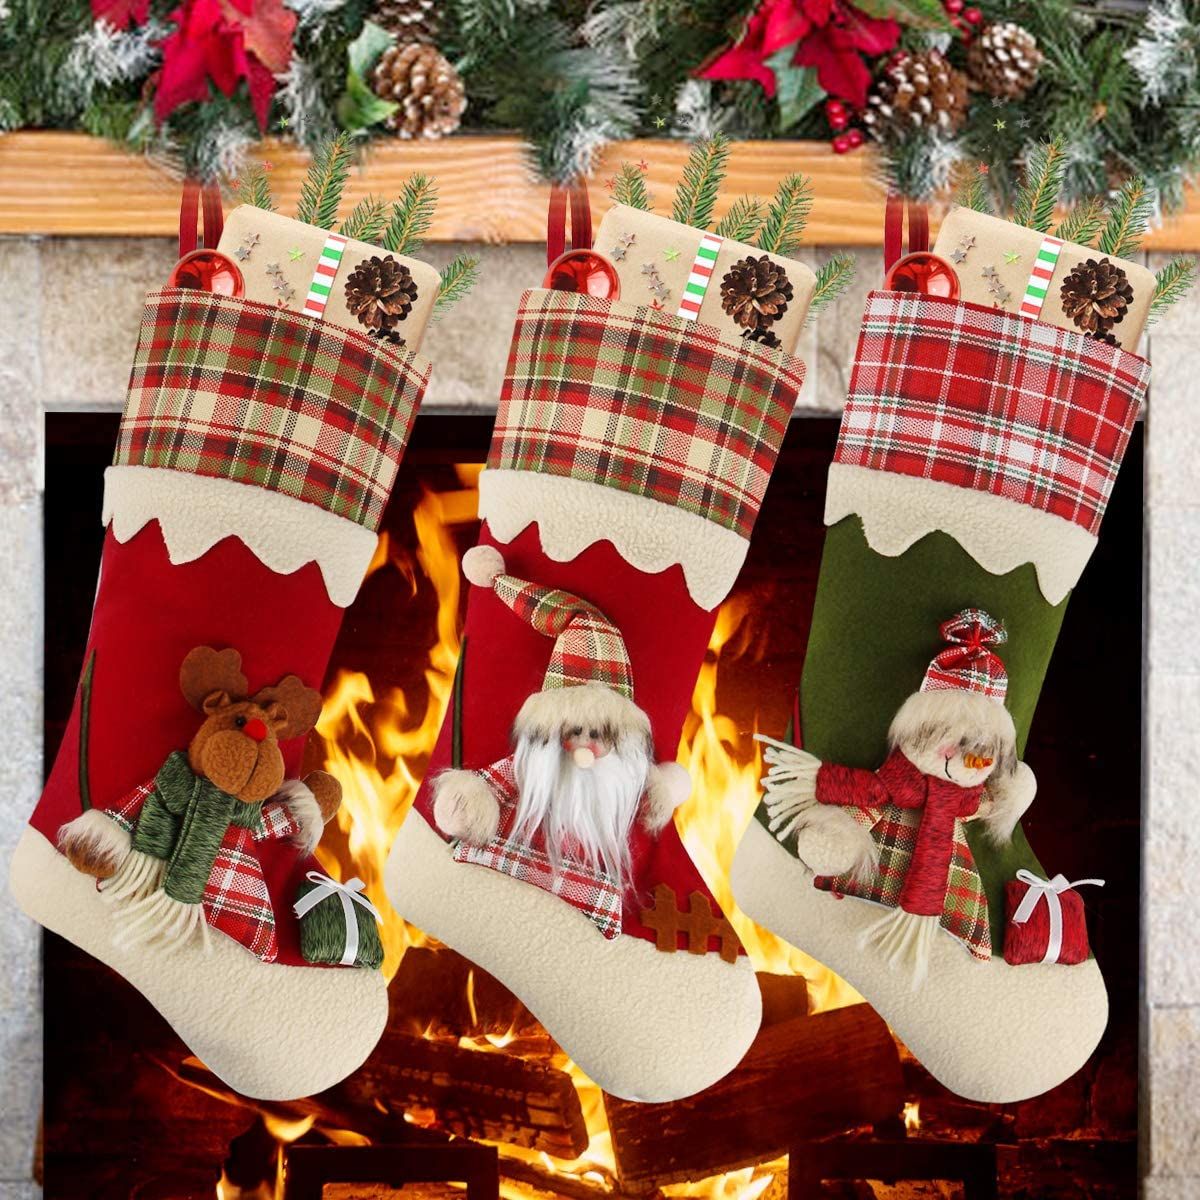 Aitey Christmas Stockings, 18 inches Large Family Christmas Stockings Set of 3 Character Santa, Snowman, Reindeer 3D Plaid Plush with Faux Fur Cuff Xmas Decorations for Kids